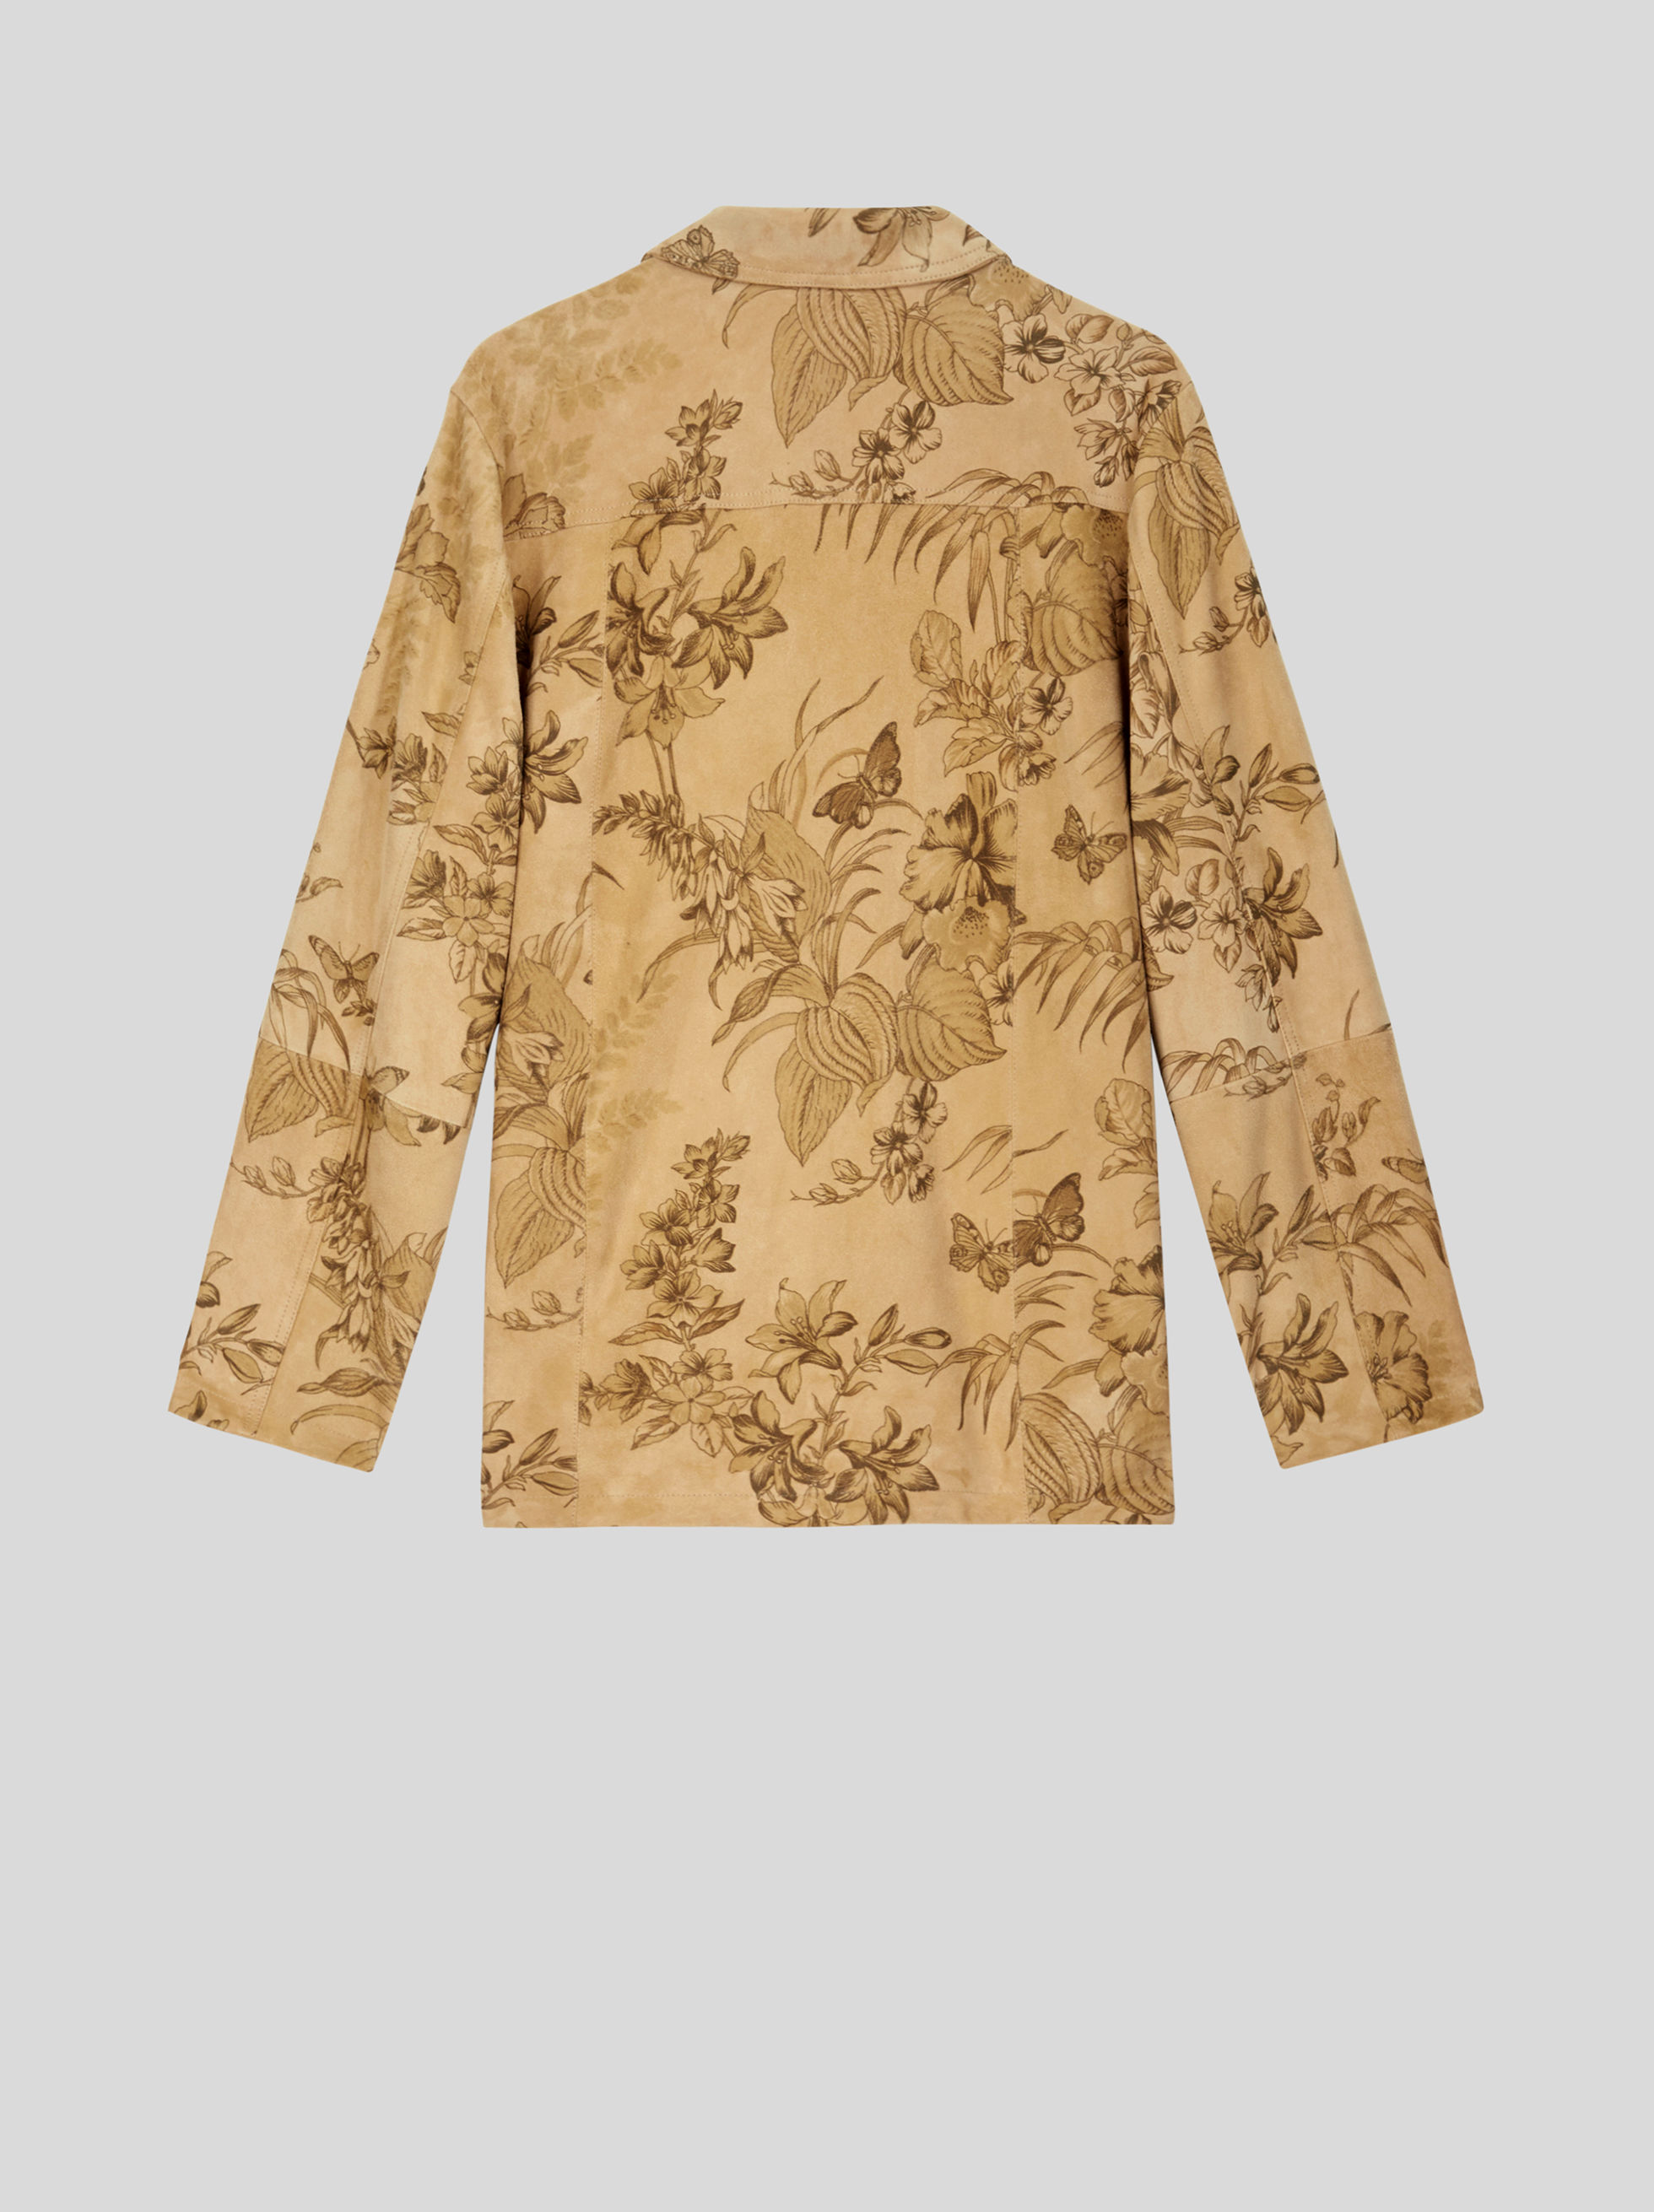 LEAFY FLORAL PRINT LEATHER JACKET